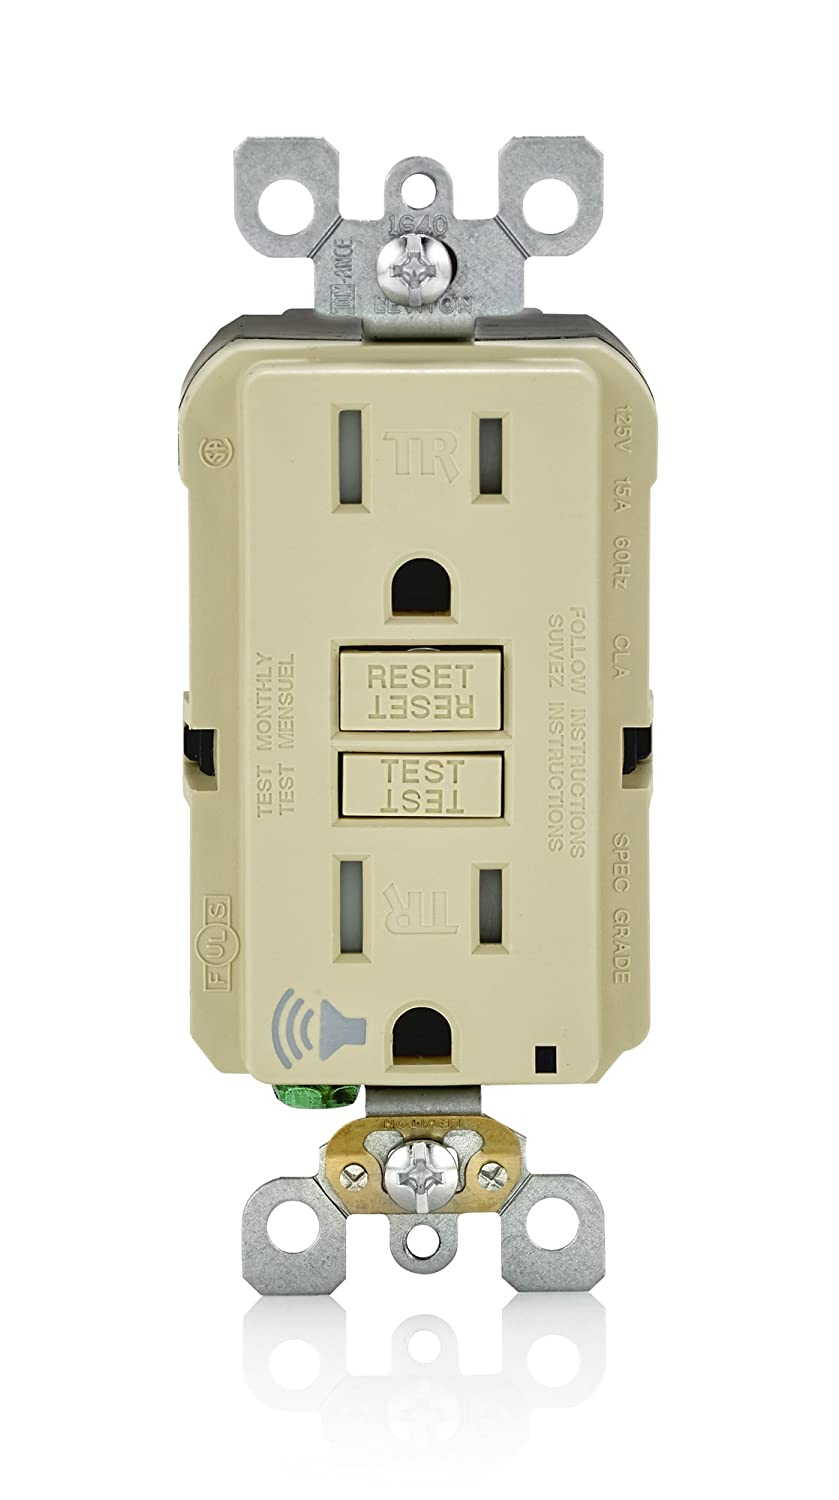 Leviton A7599 I Smartlockpro Slim Gfci With Audible Trip Alert 15 Circuit Breaker Keeps Immediately Tripping After Reset Electrical Amp 120 Volt Ivory